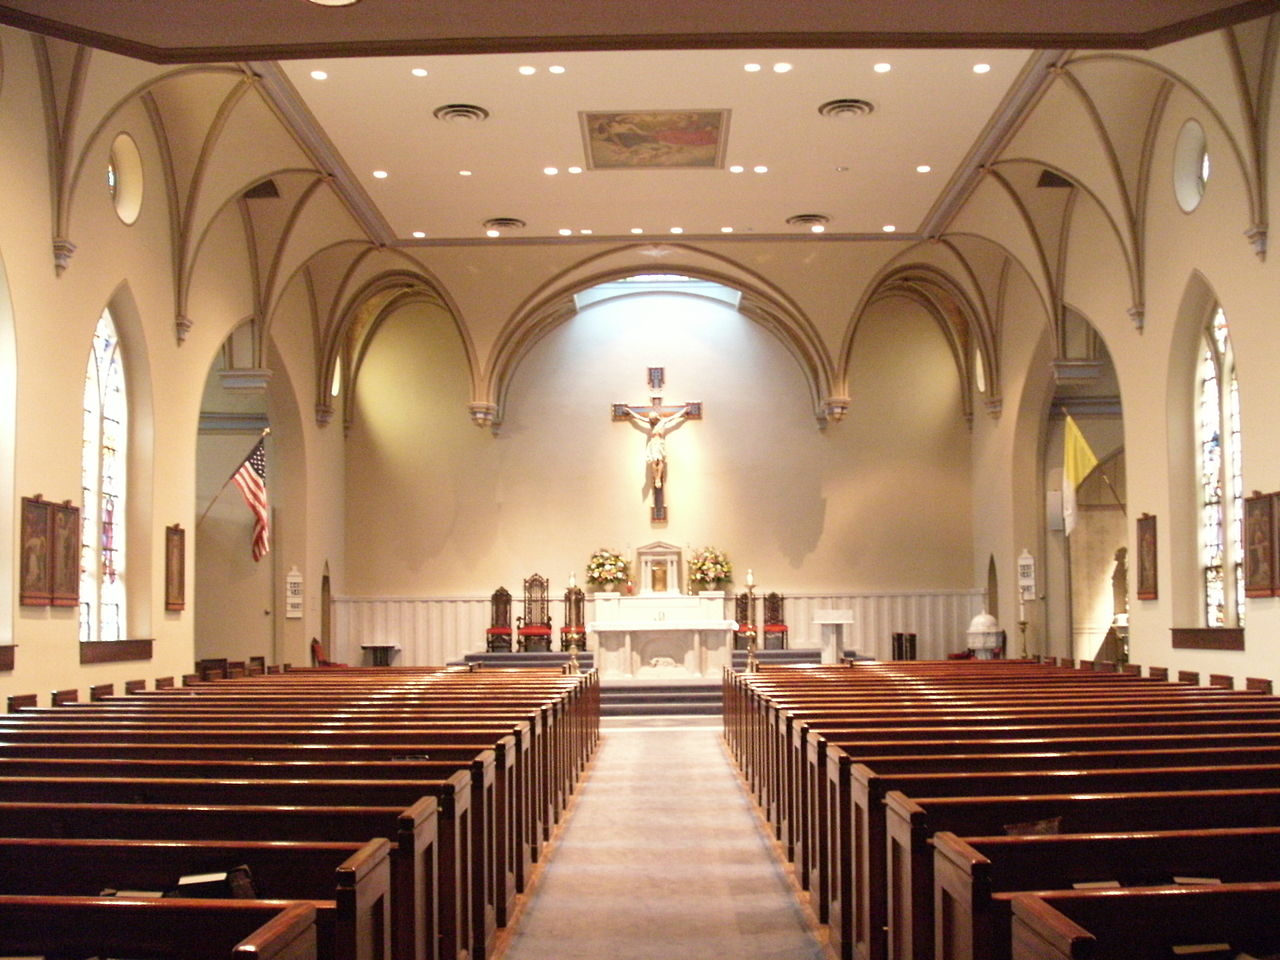 File:St. Mary's Catholic Church interior, Alexandria, VA ...